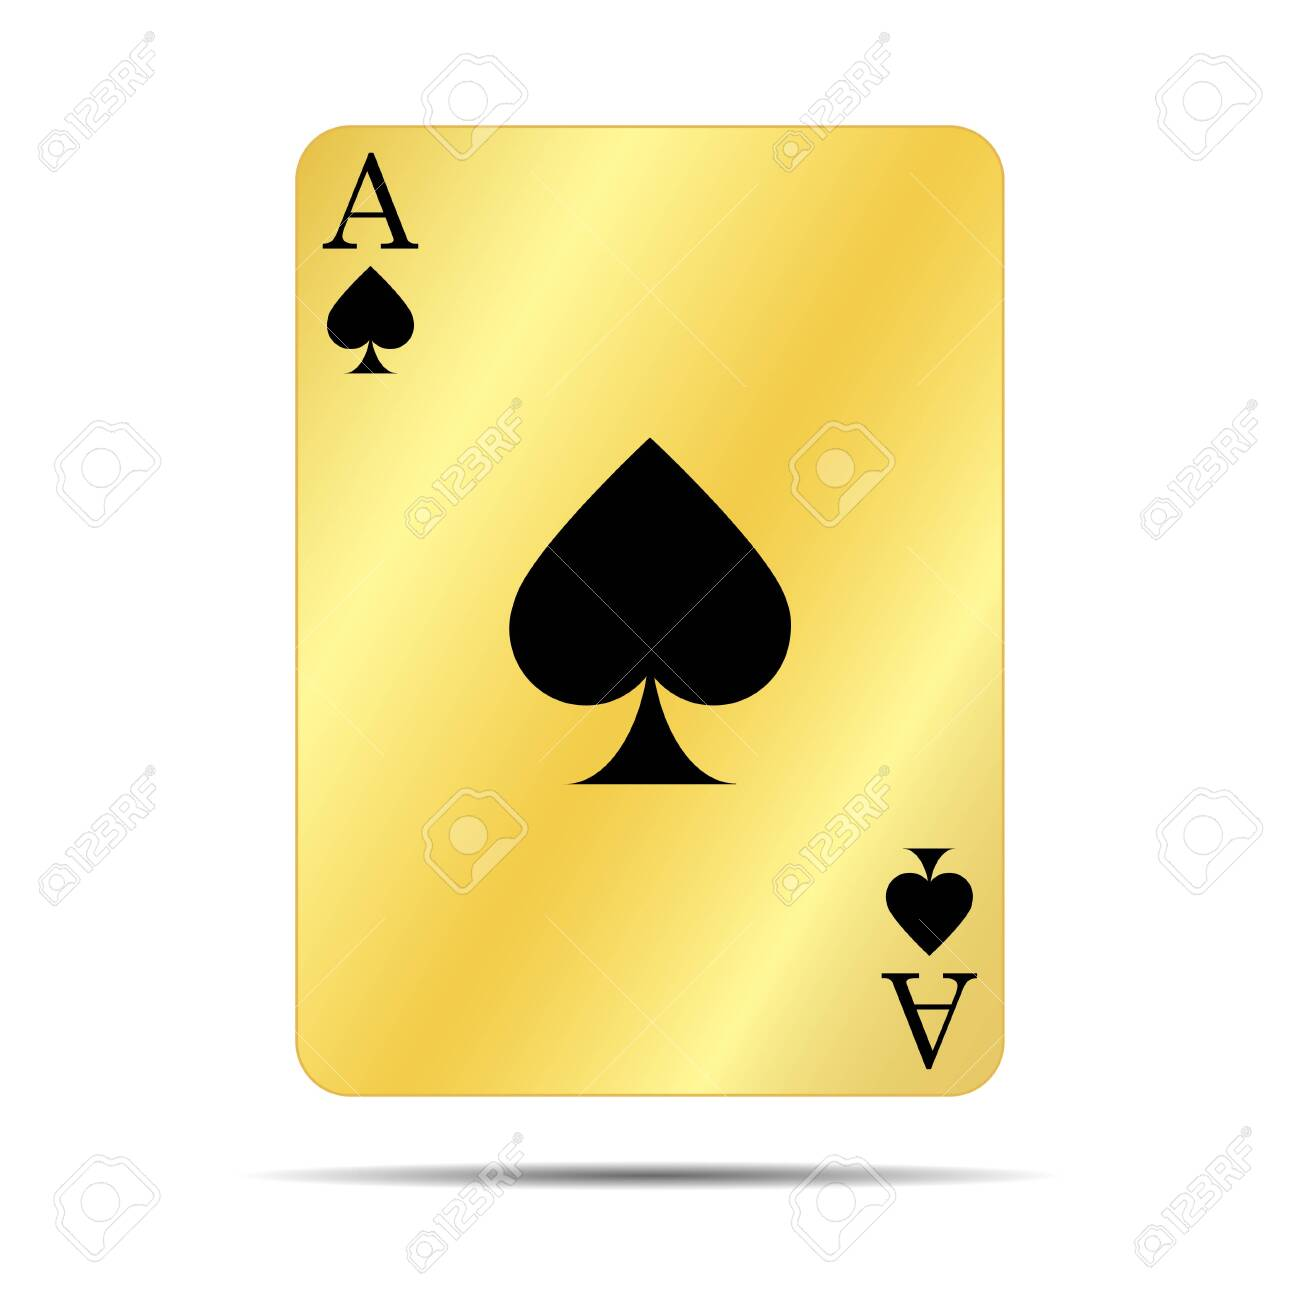 gold ace of spades - 132142956